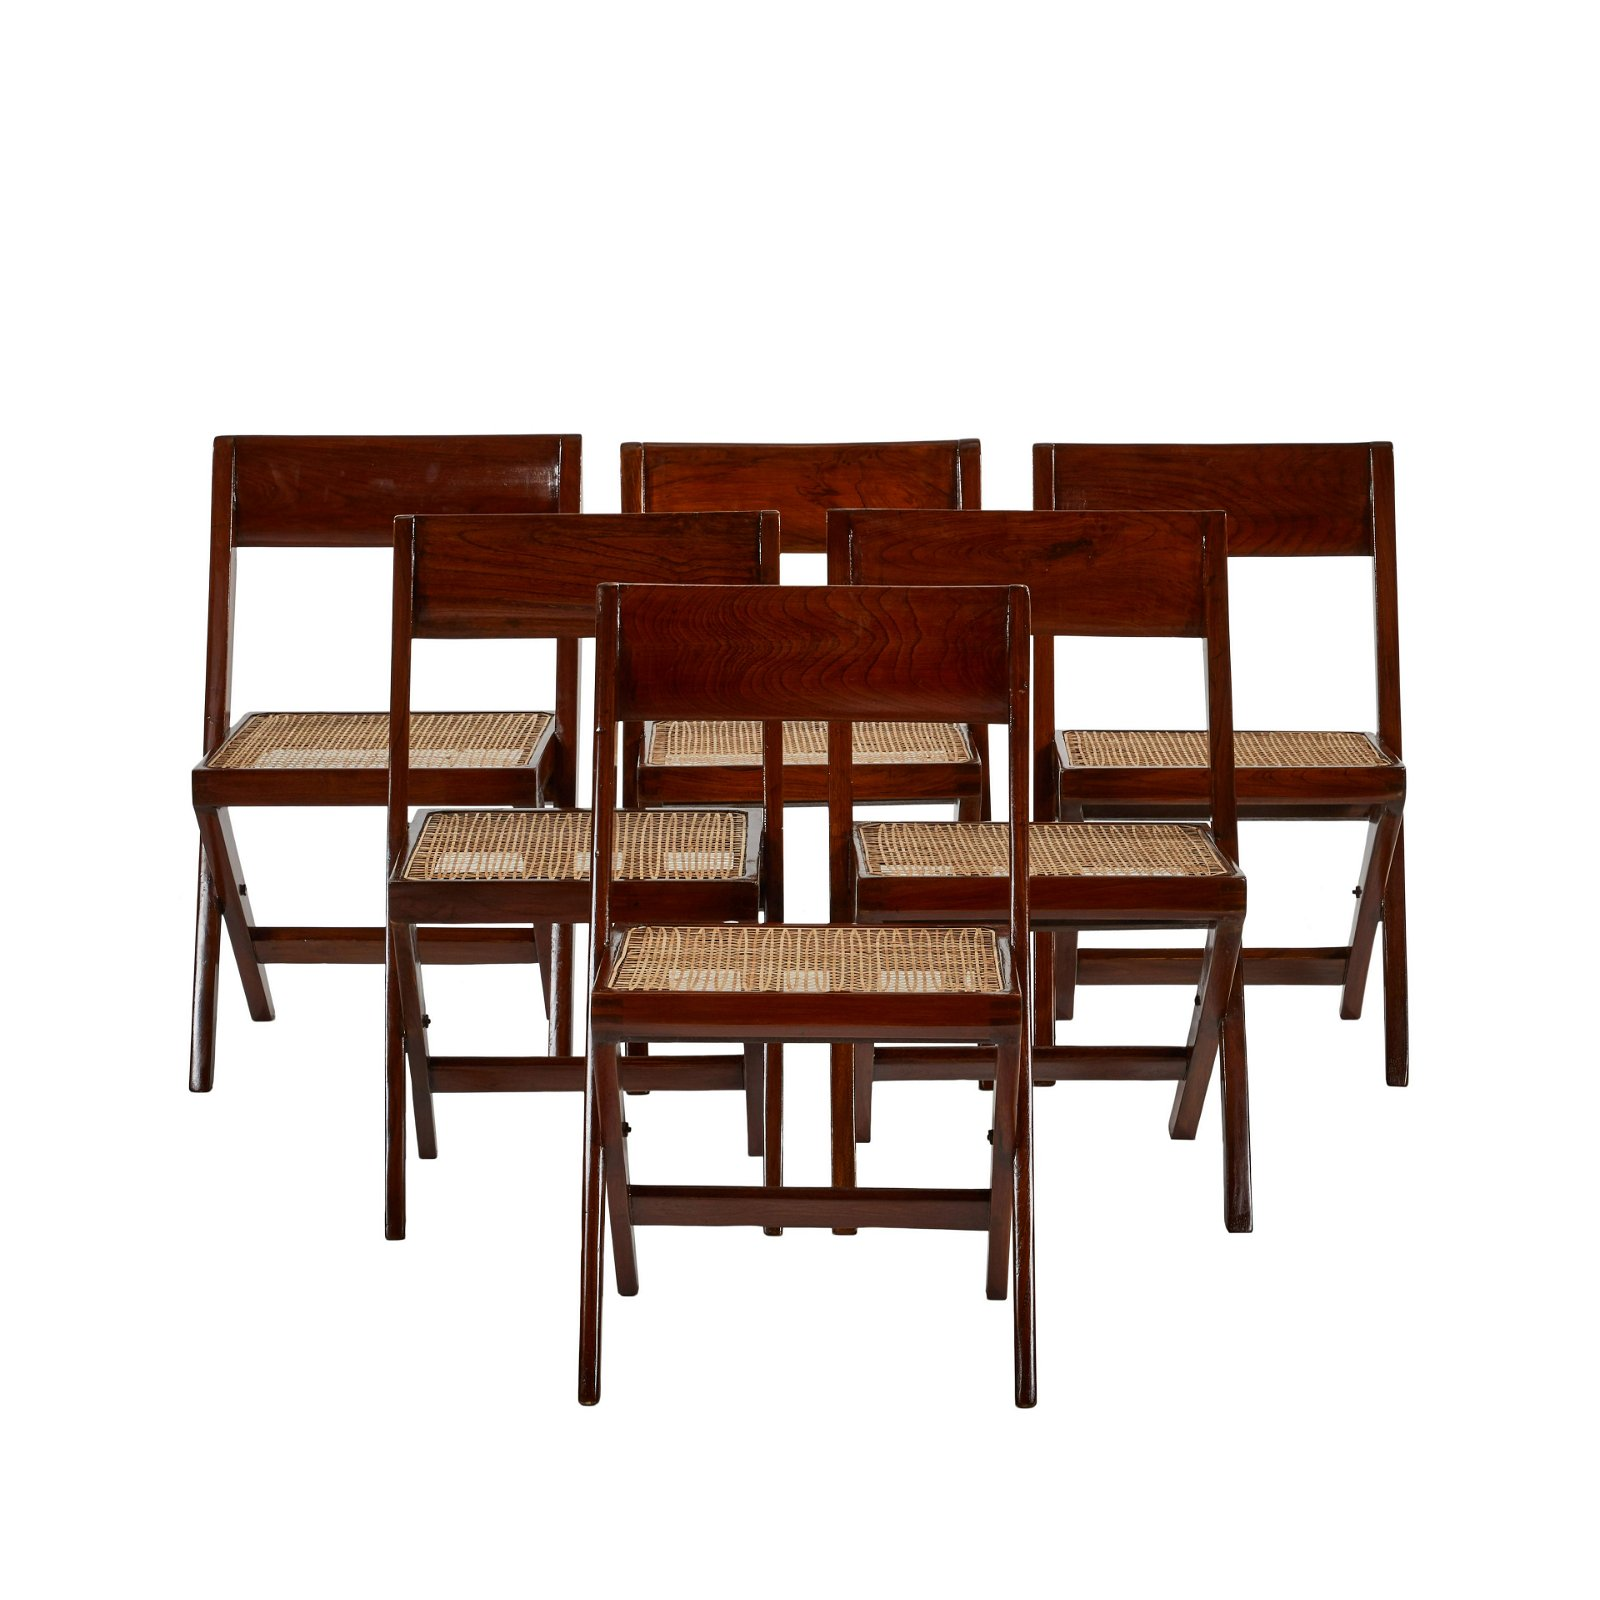 Pierre Jeanneret Library Chairs (6)